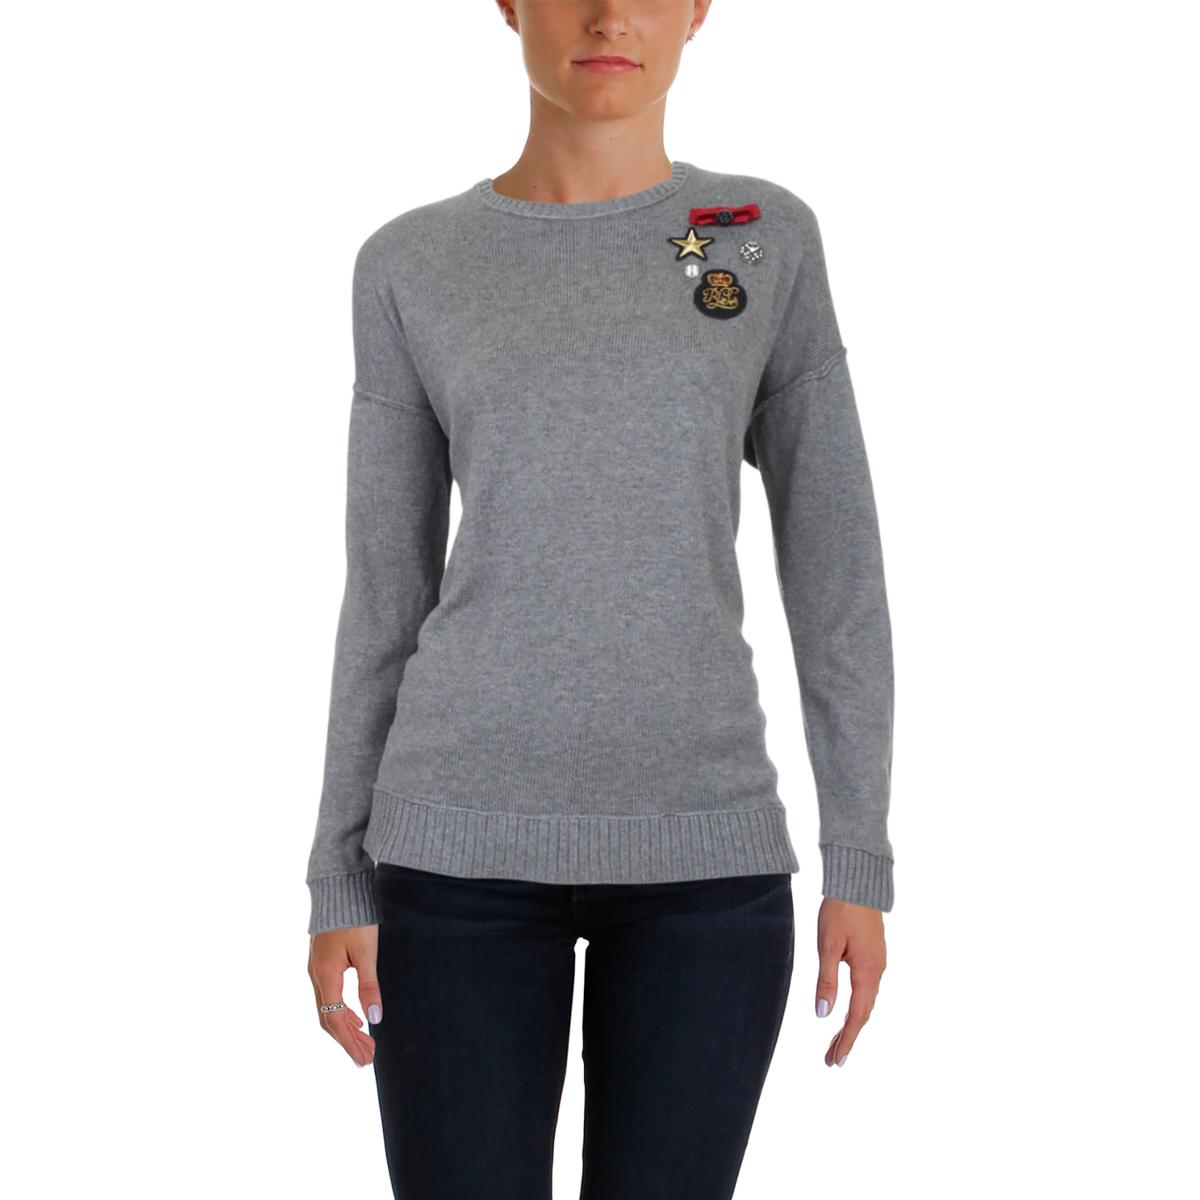 baaf879018 Ralph Lauren Womens Embellished Military Patch Pullover Sweater